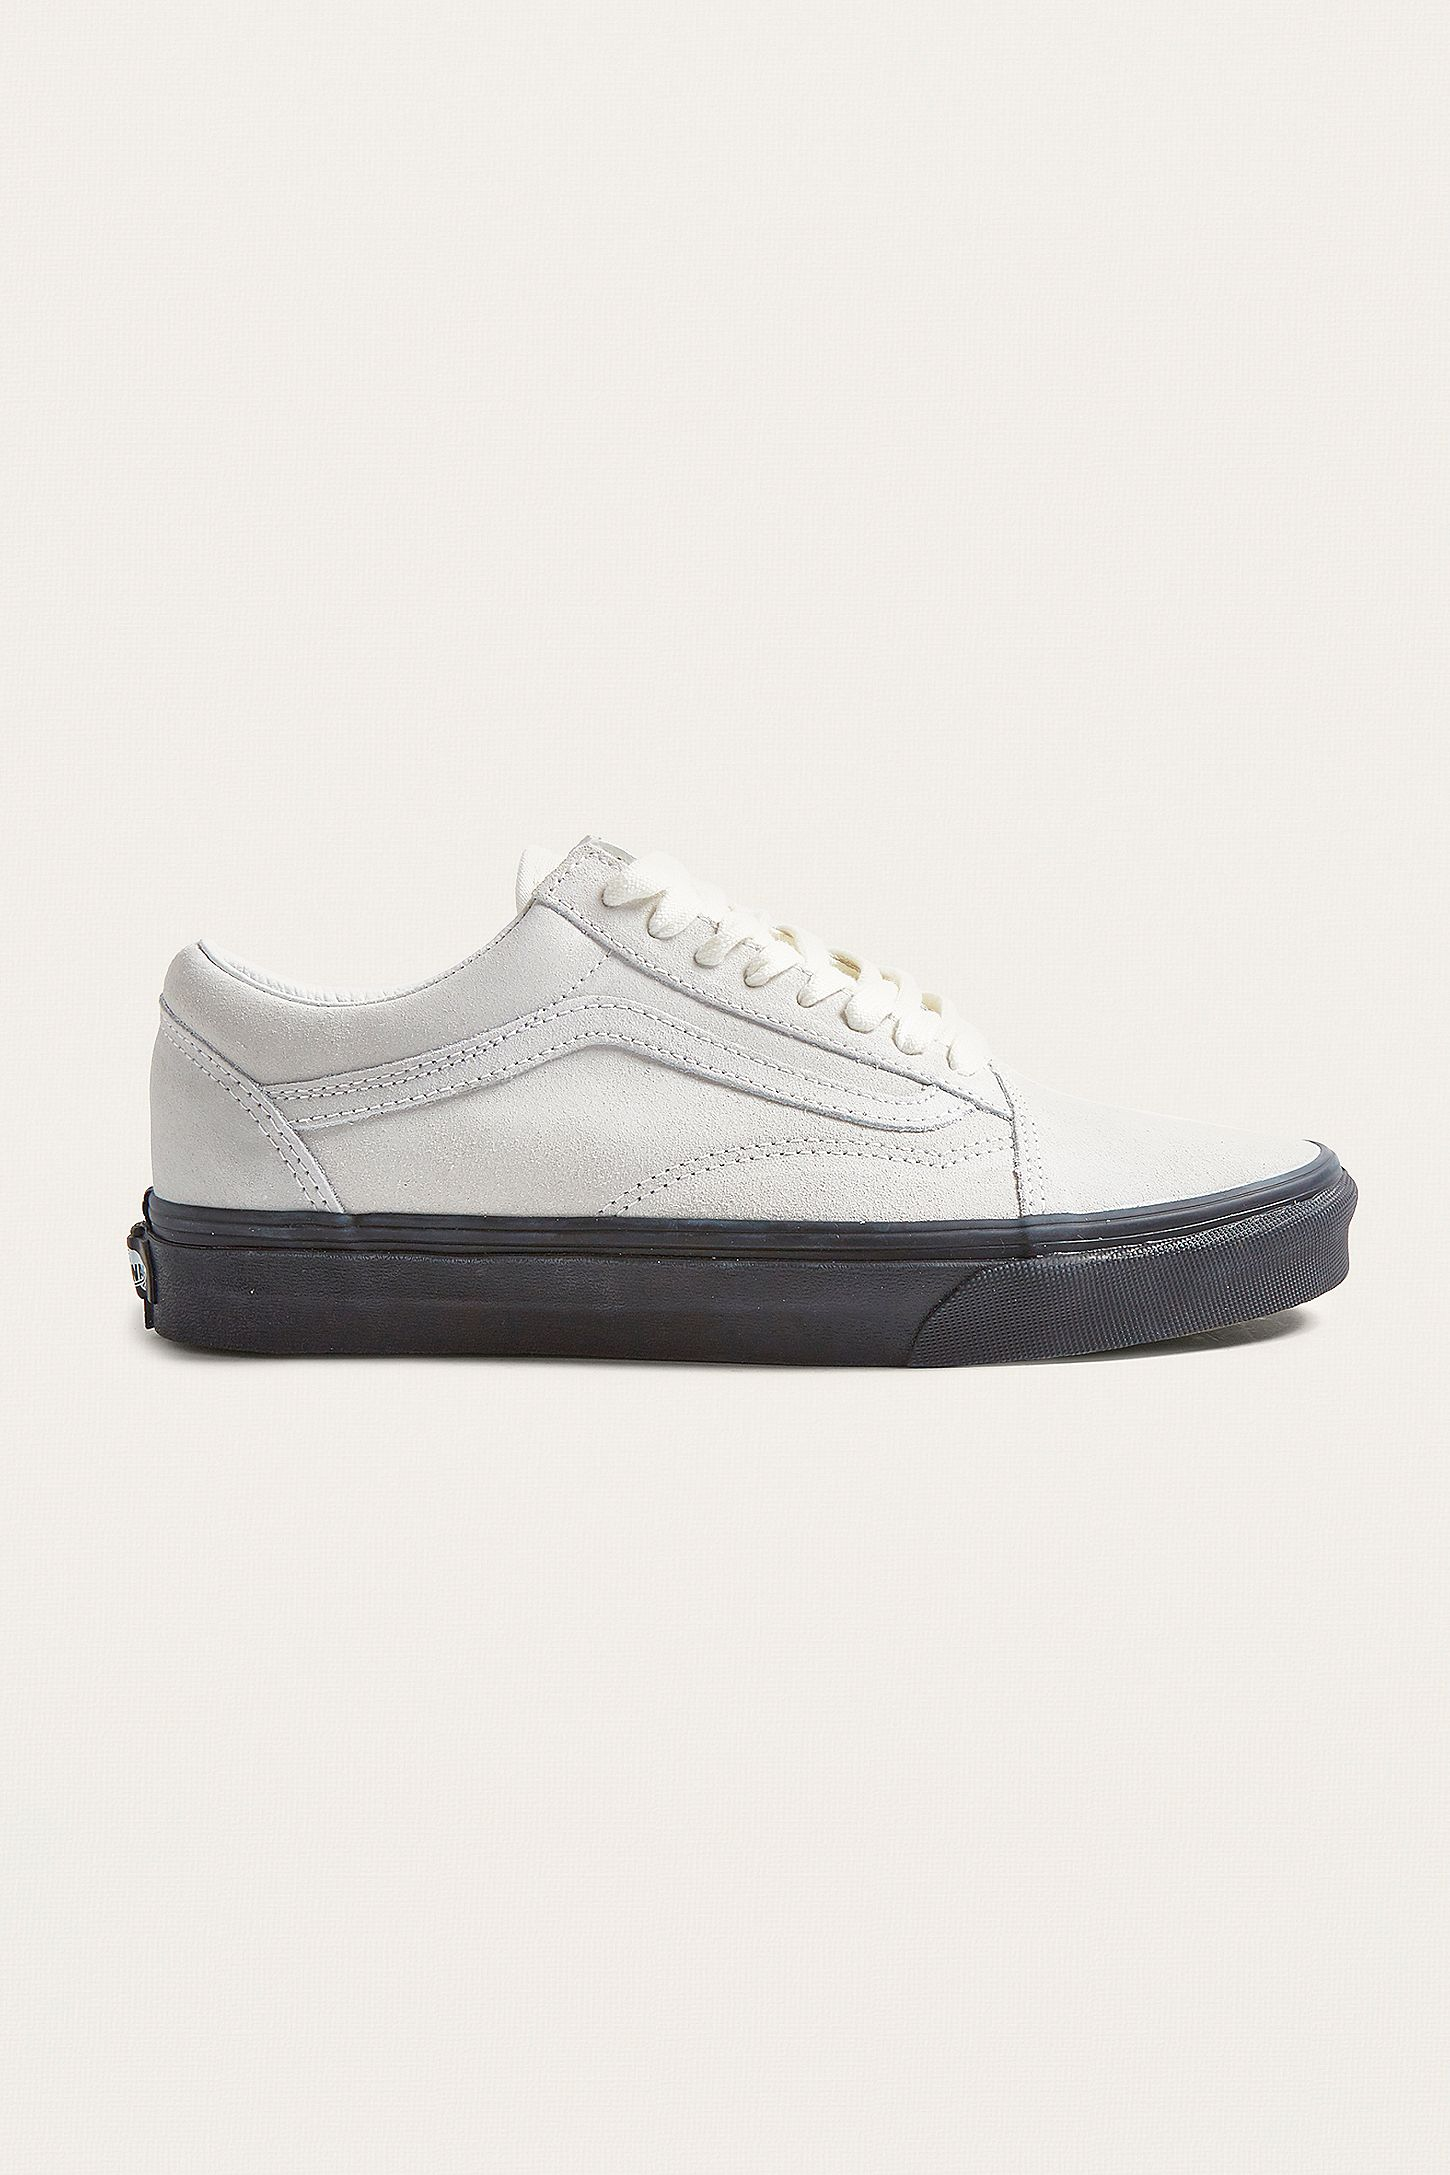 1aed91e904710d Vans Old Skool White and Black Sole